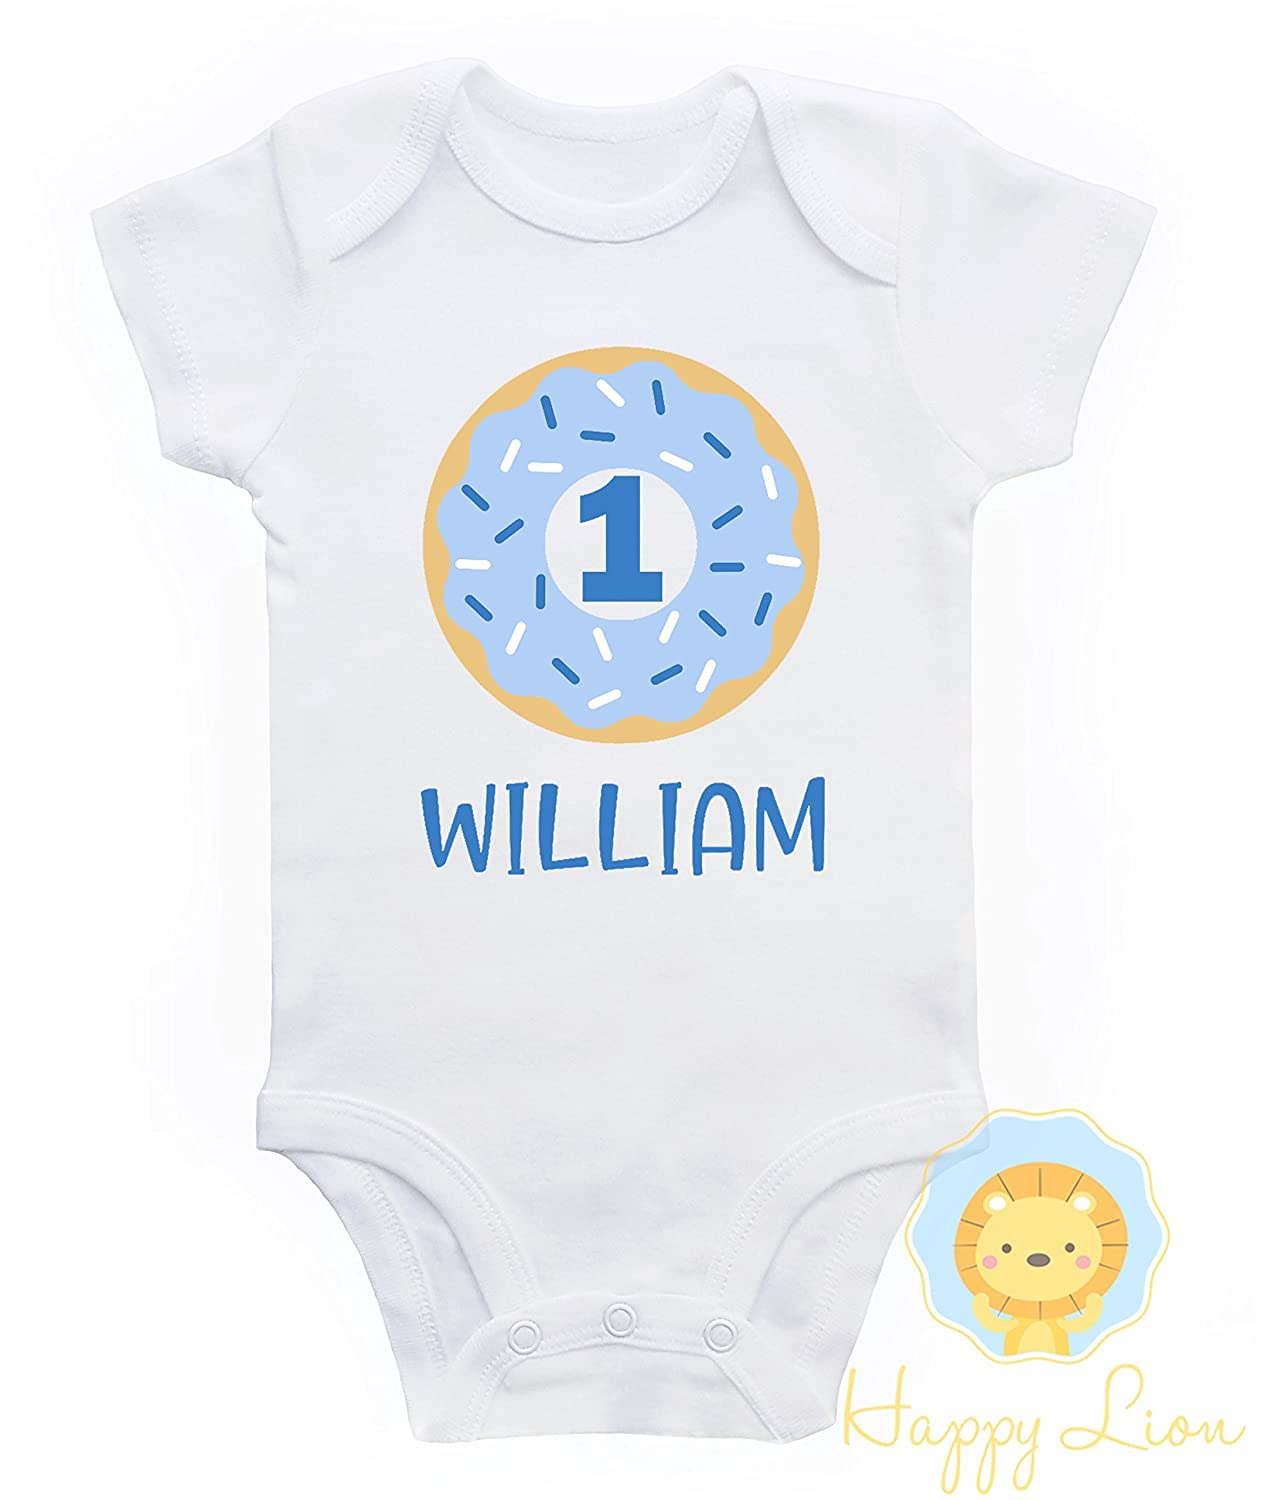 Happy Lion Clothing - Donut First Birthday Onesie® for boys, 1st Birthday outfit for boys